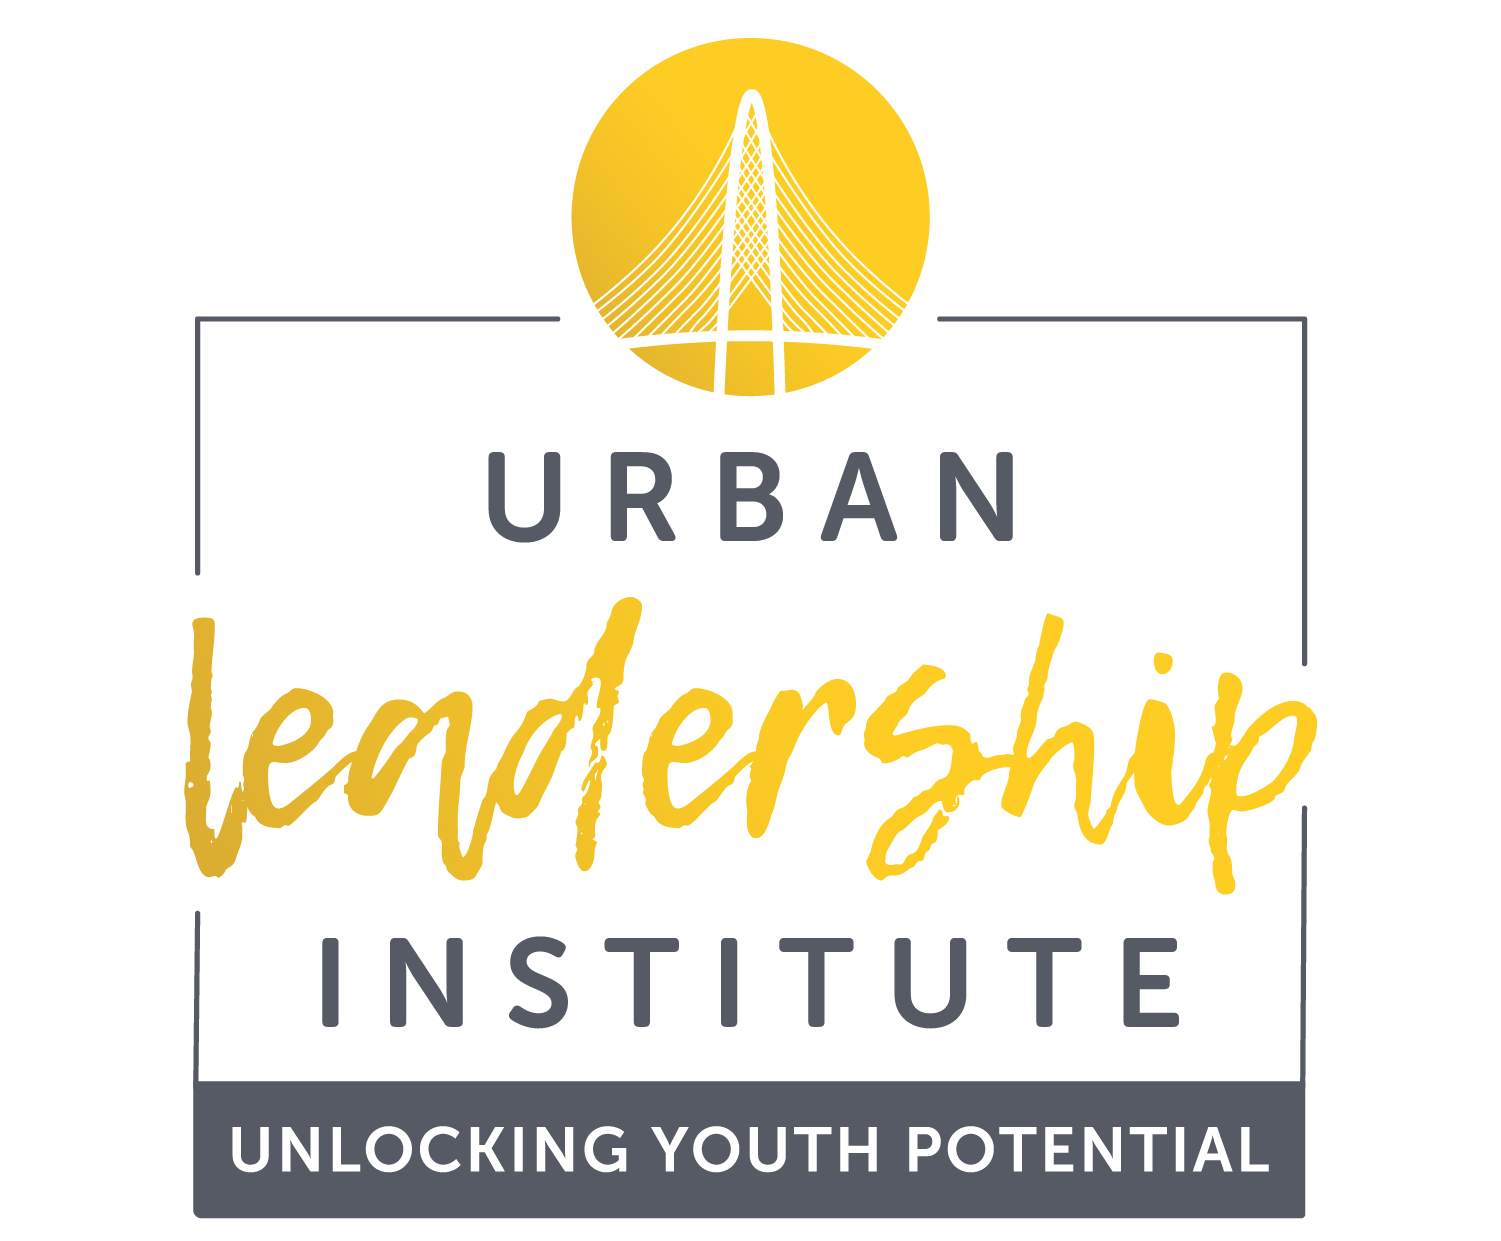 Urban Leadership Institute